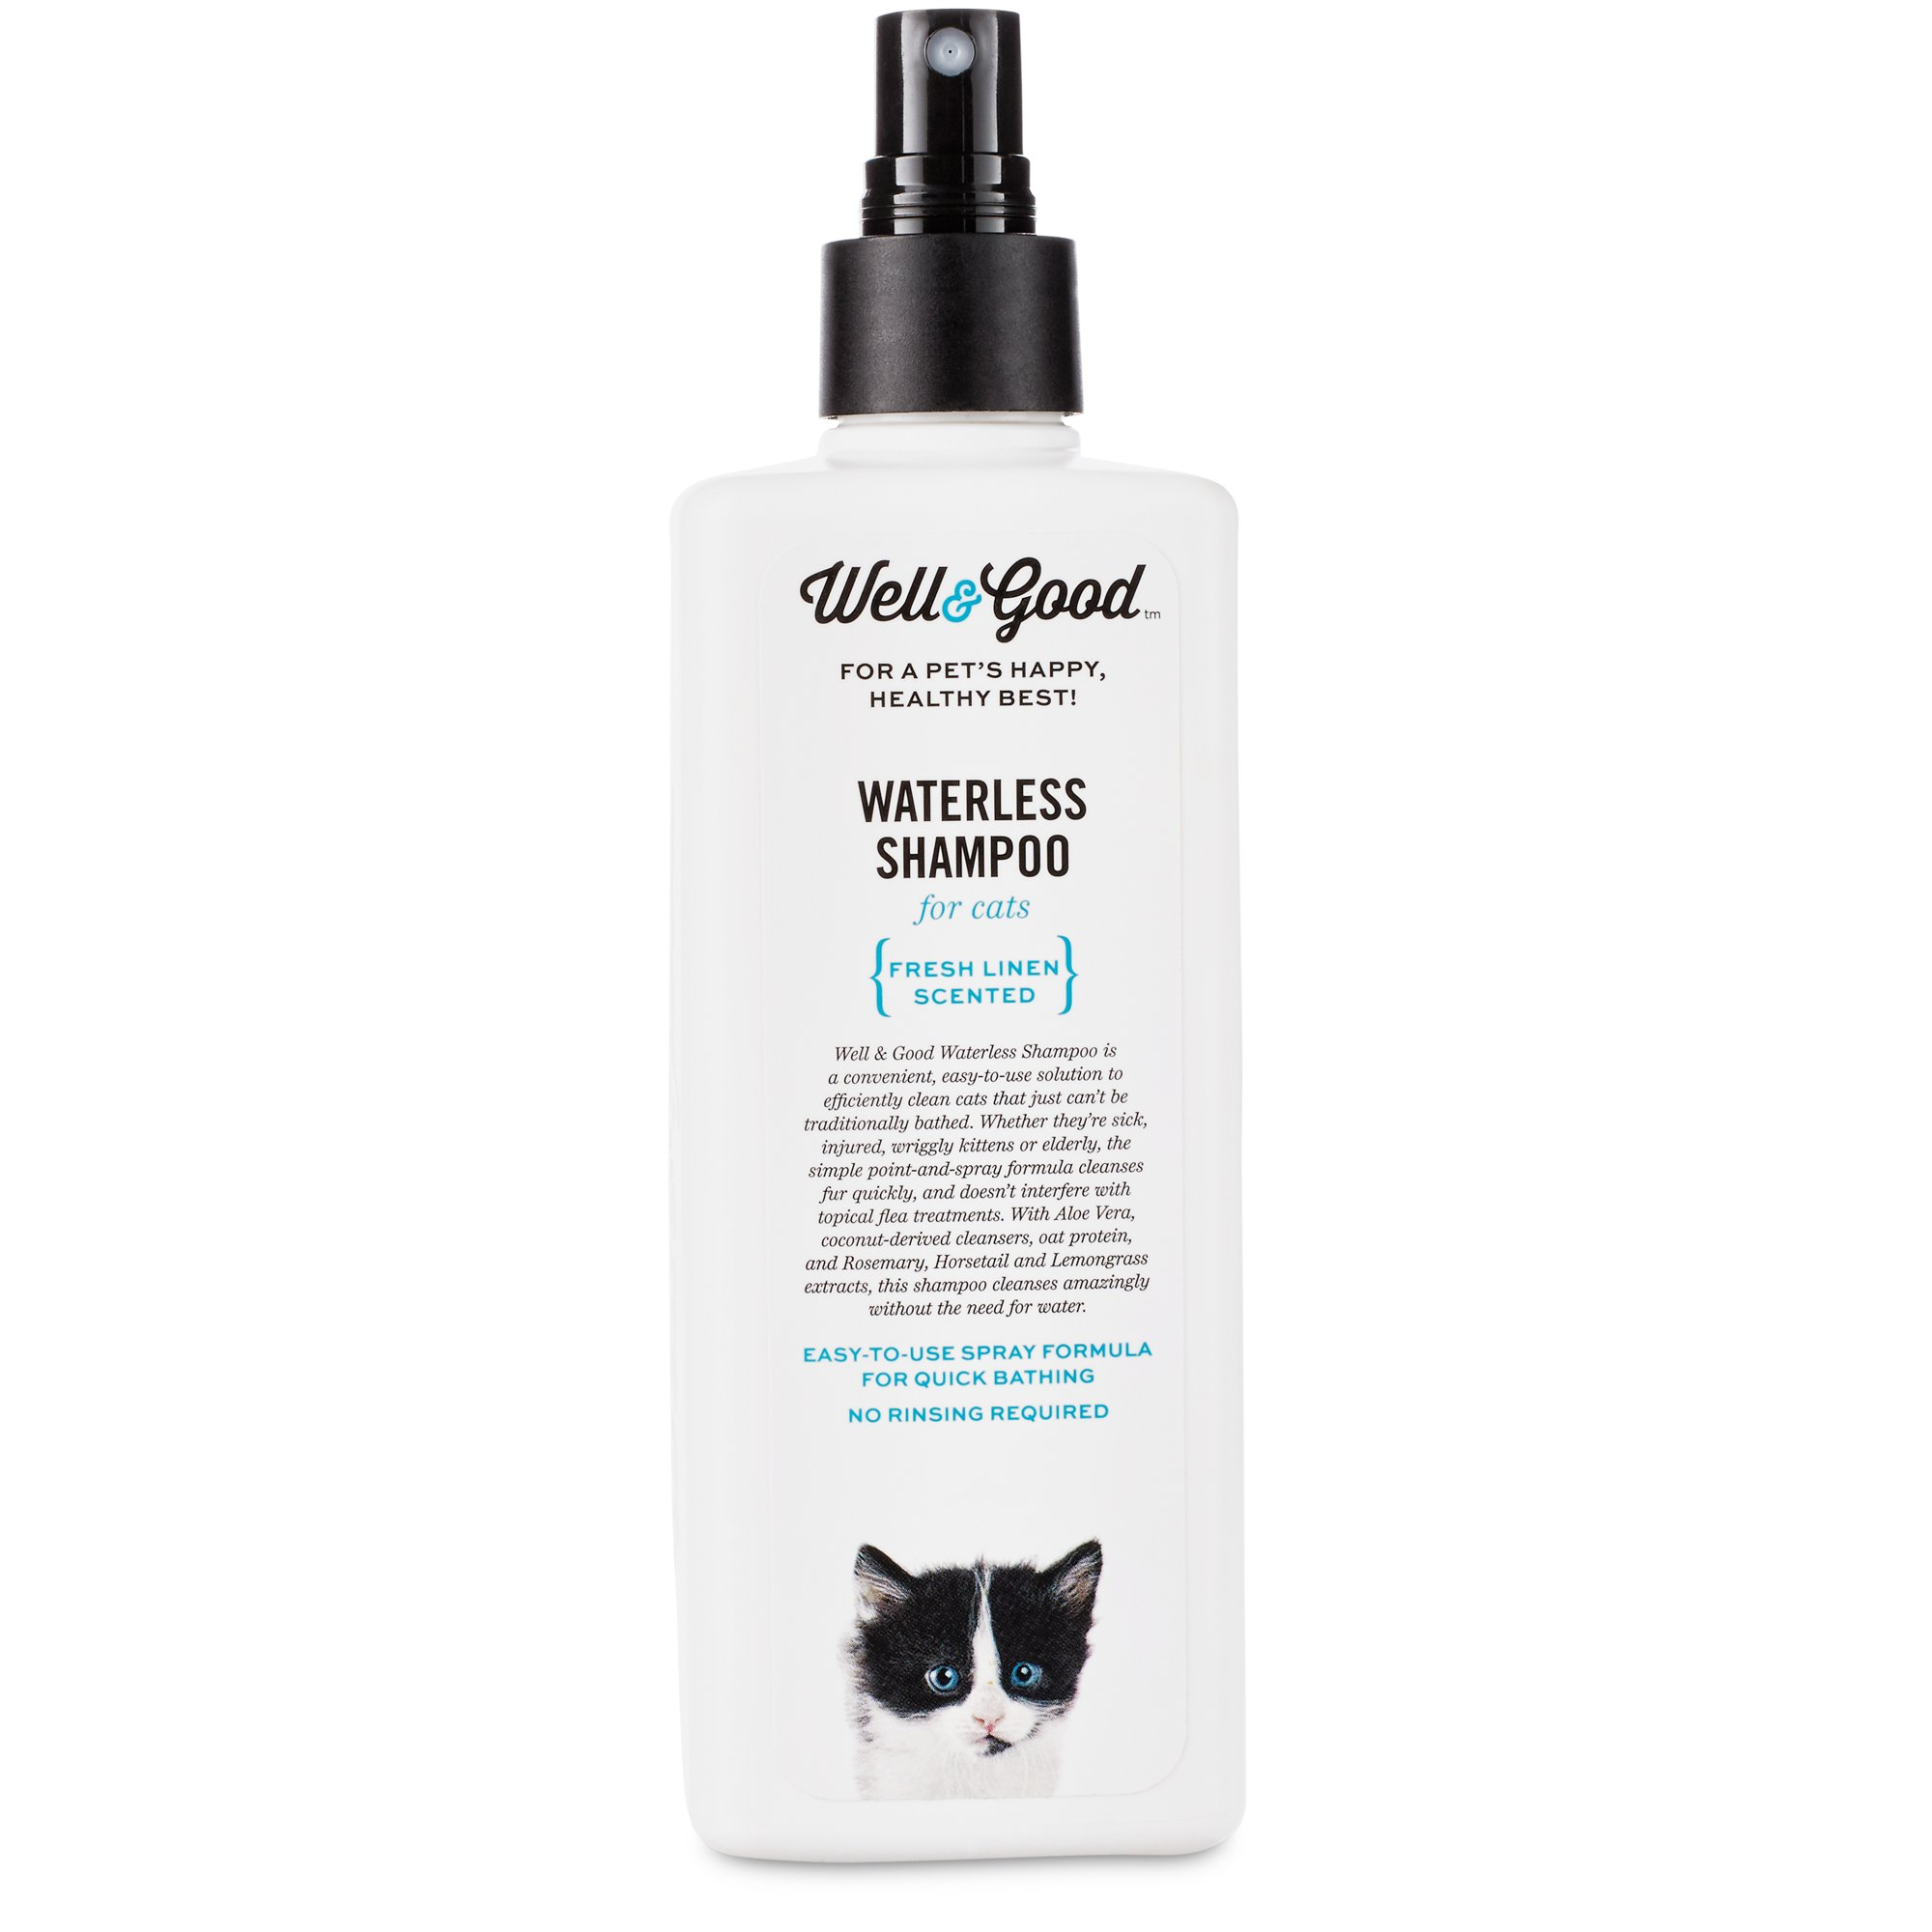 Well Shampoo Check Out Well Good Waterless Cat Shampoo Shopyourway